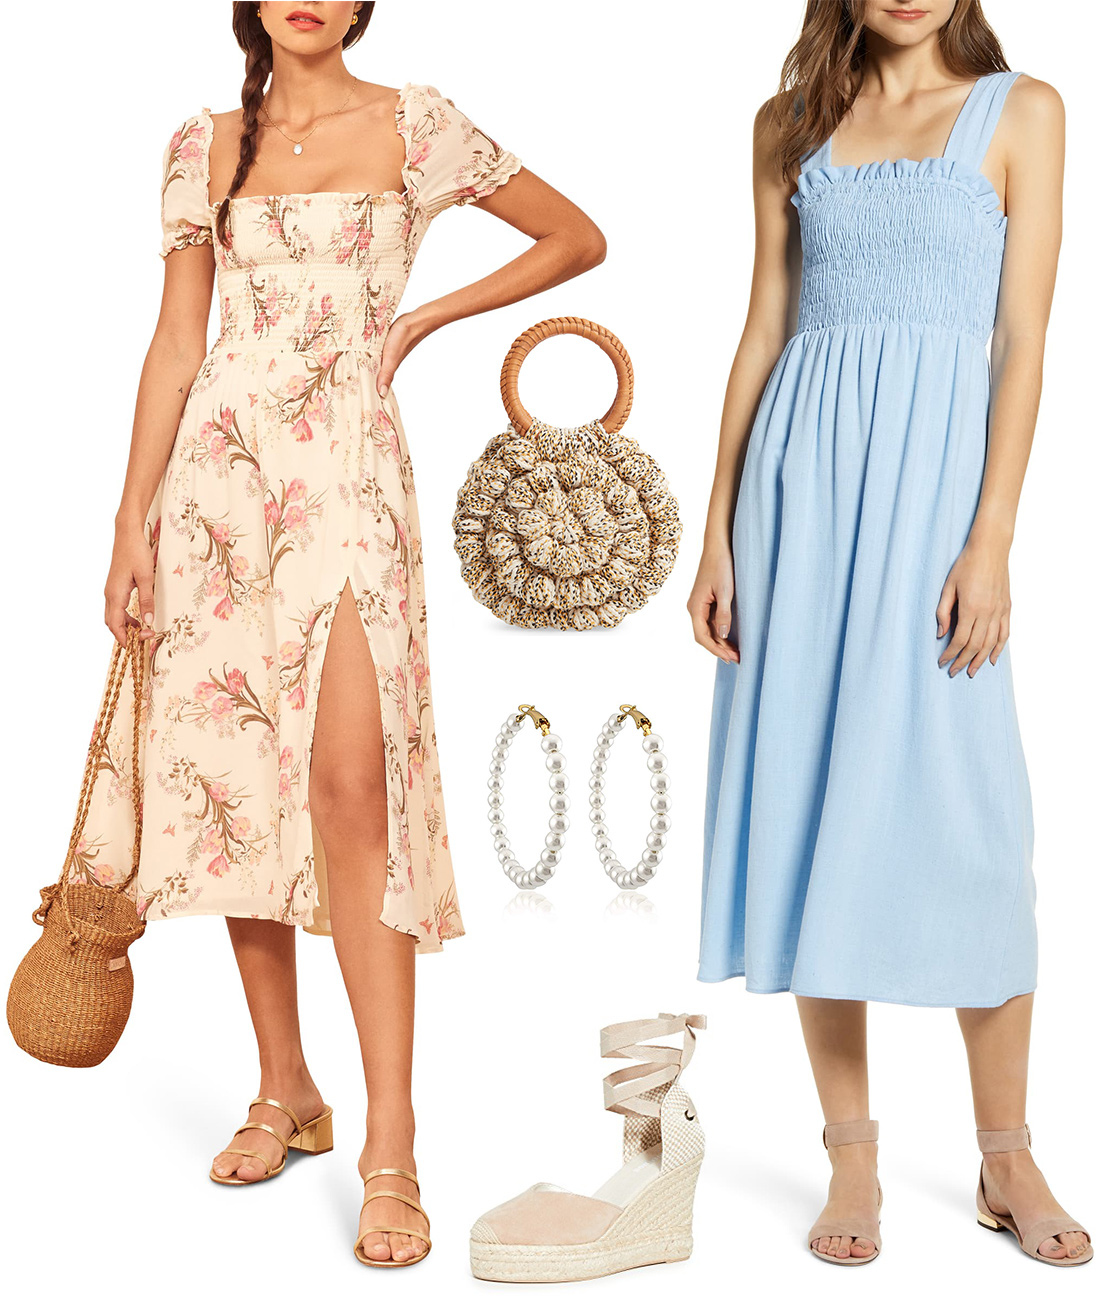 Wedding Guest Outfits for a country or southern wedding